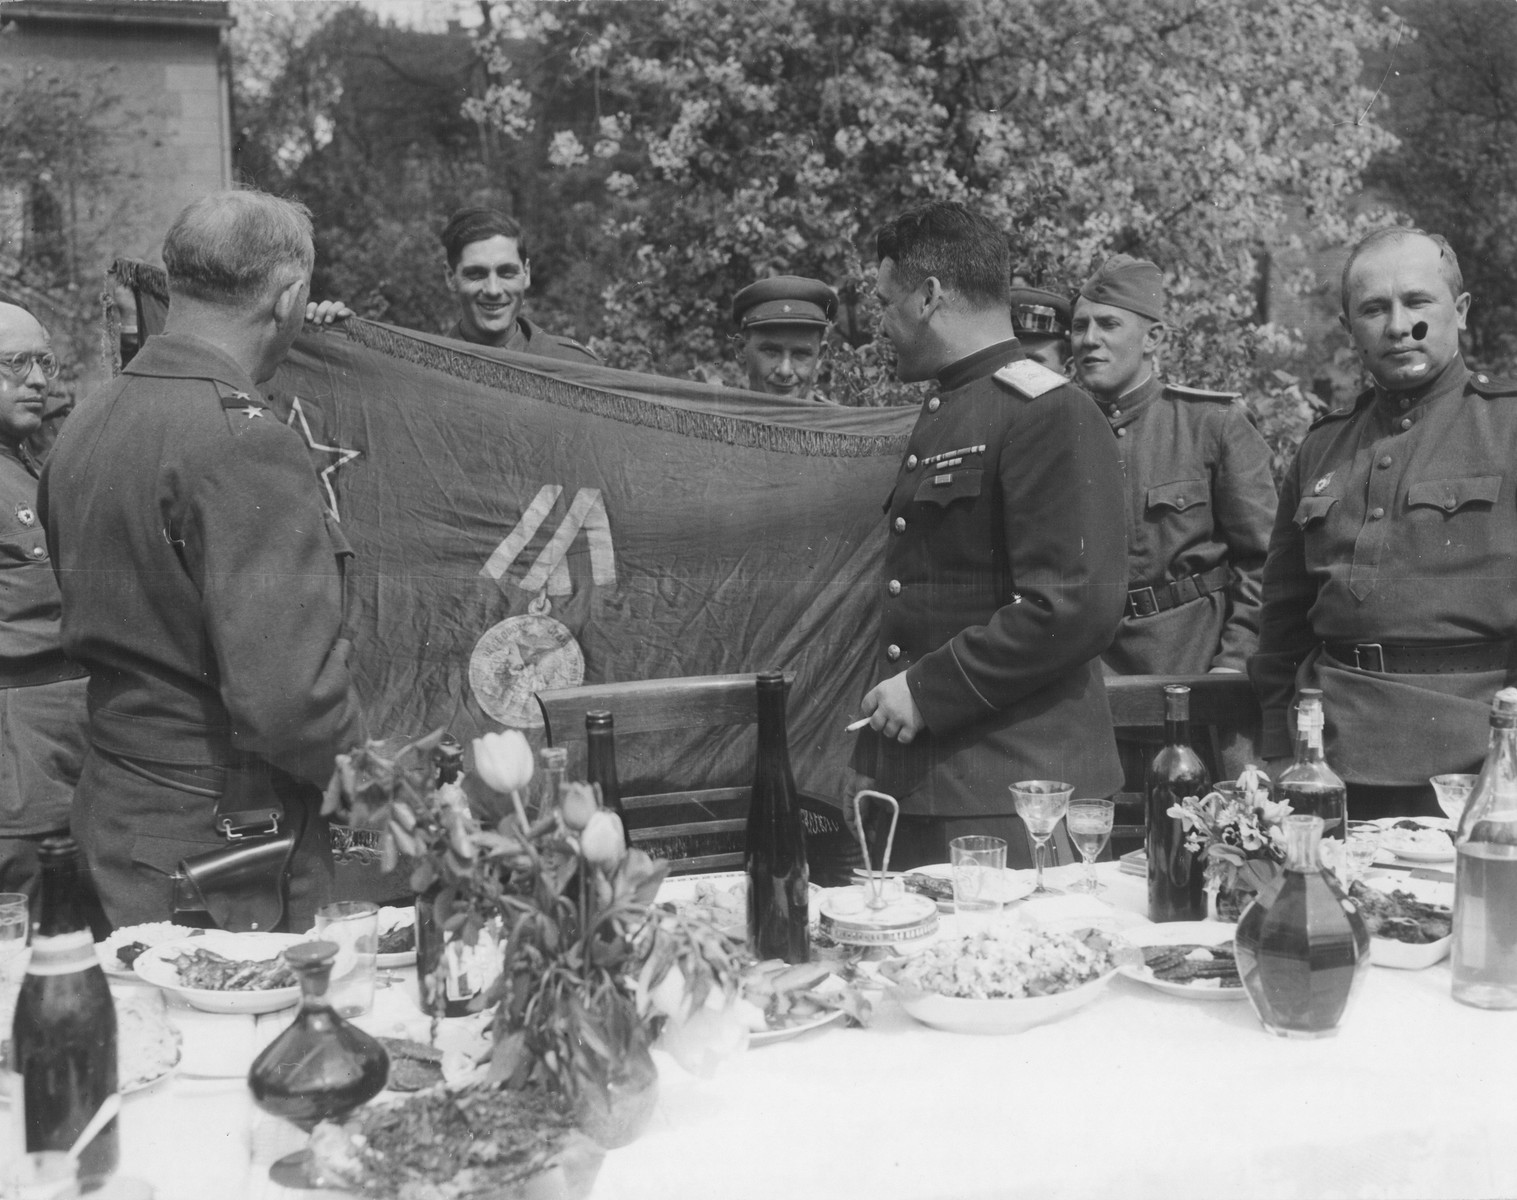 Soviet officers view a large banner featuring the Red Star and a military decoration before sitting down to an outdoor banquet.